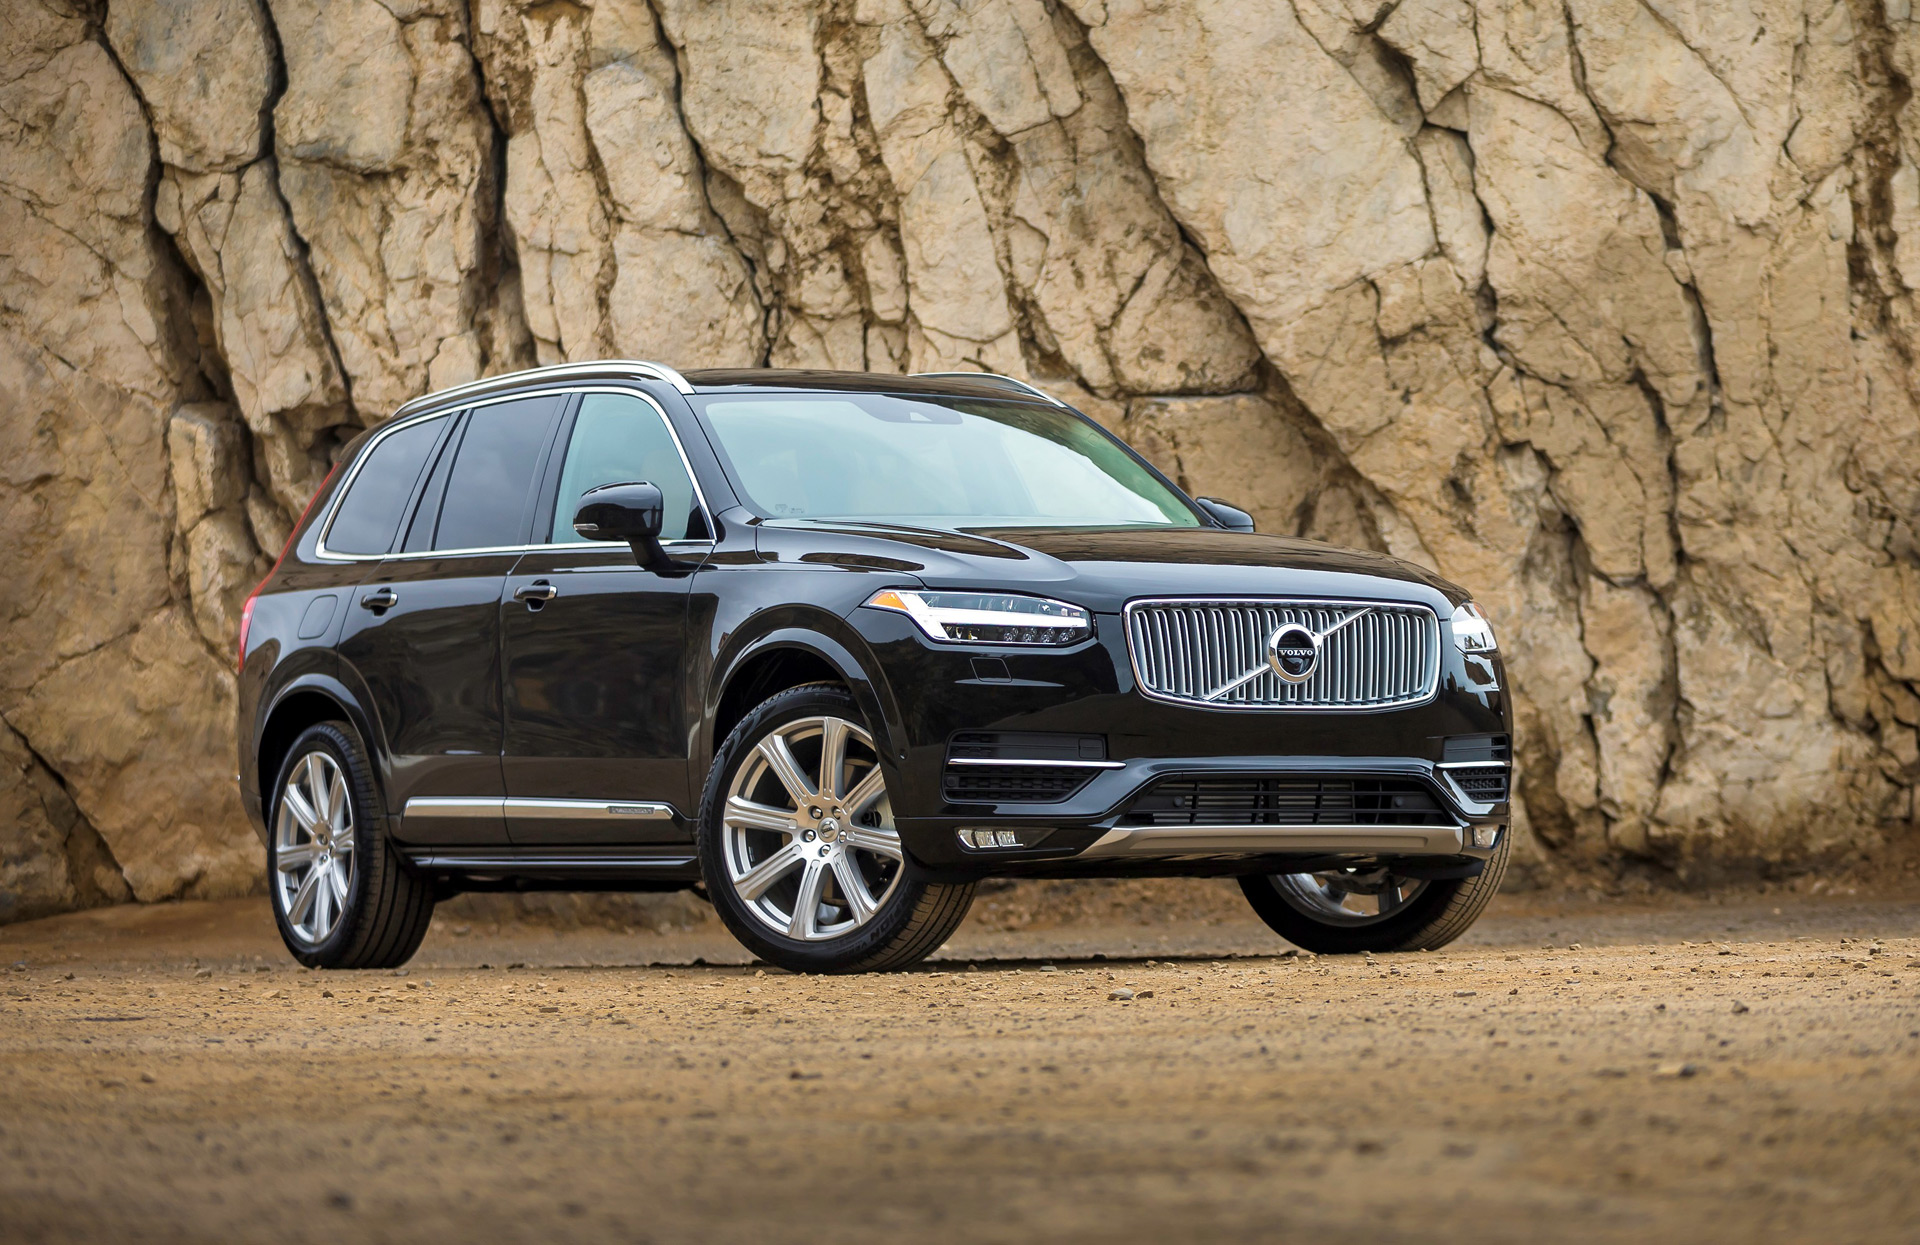 2017 Volvo Xc90 S90 And V90 Cross Country Recalled Over Airbag Problems